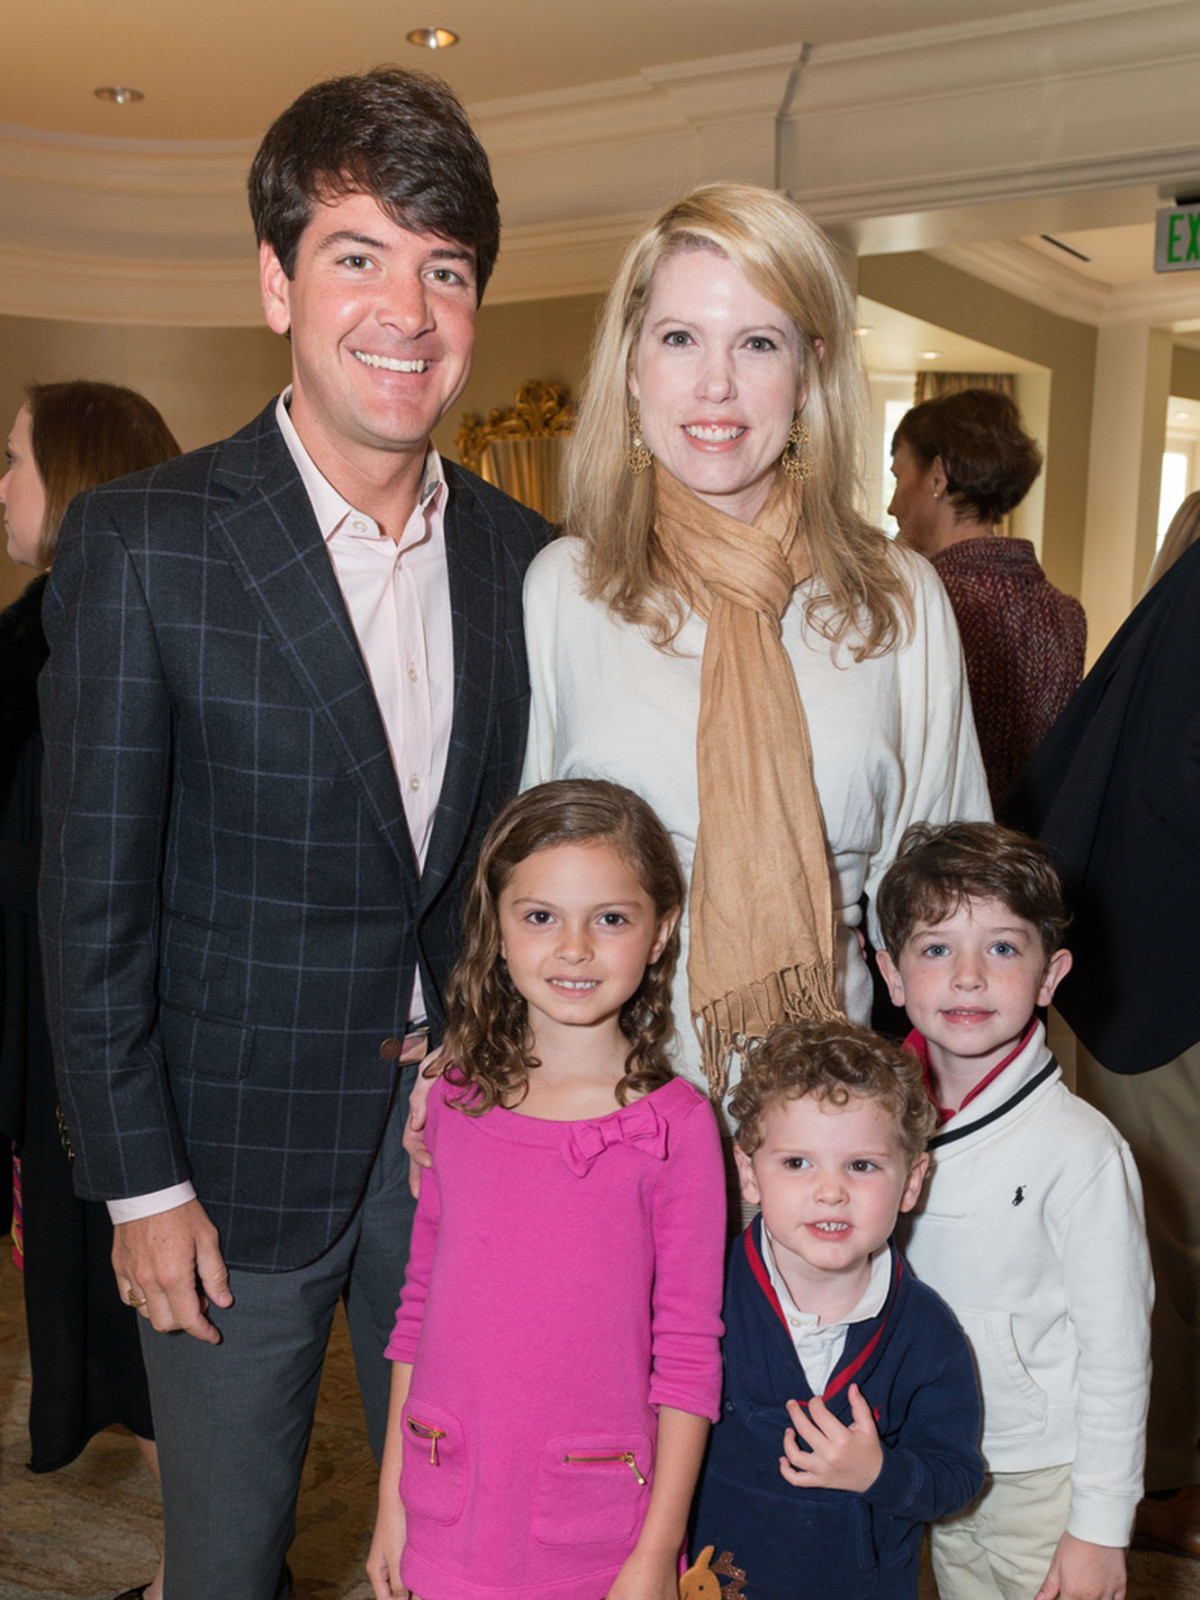 News, Houston Symphony Magical Musical Morning, Dec. 2015, Bill Toomey, Courtney Toomey, Callie, Hayes and Billy Toomey.